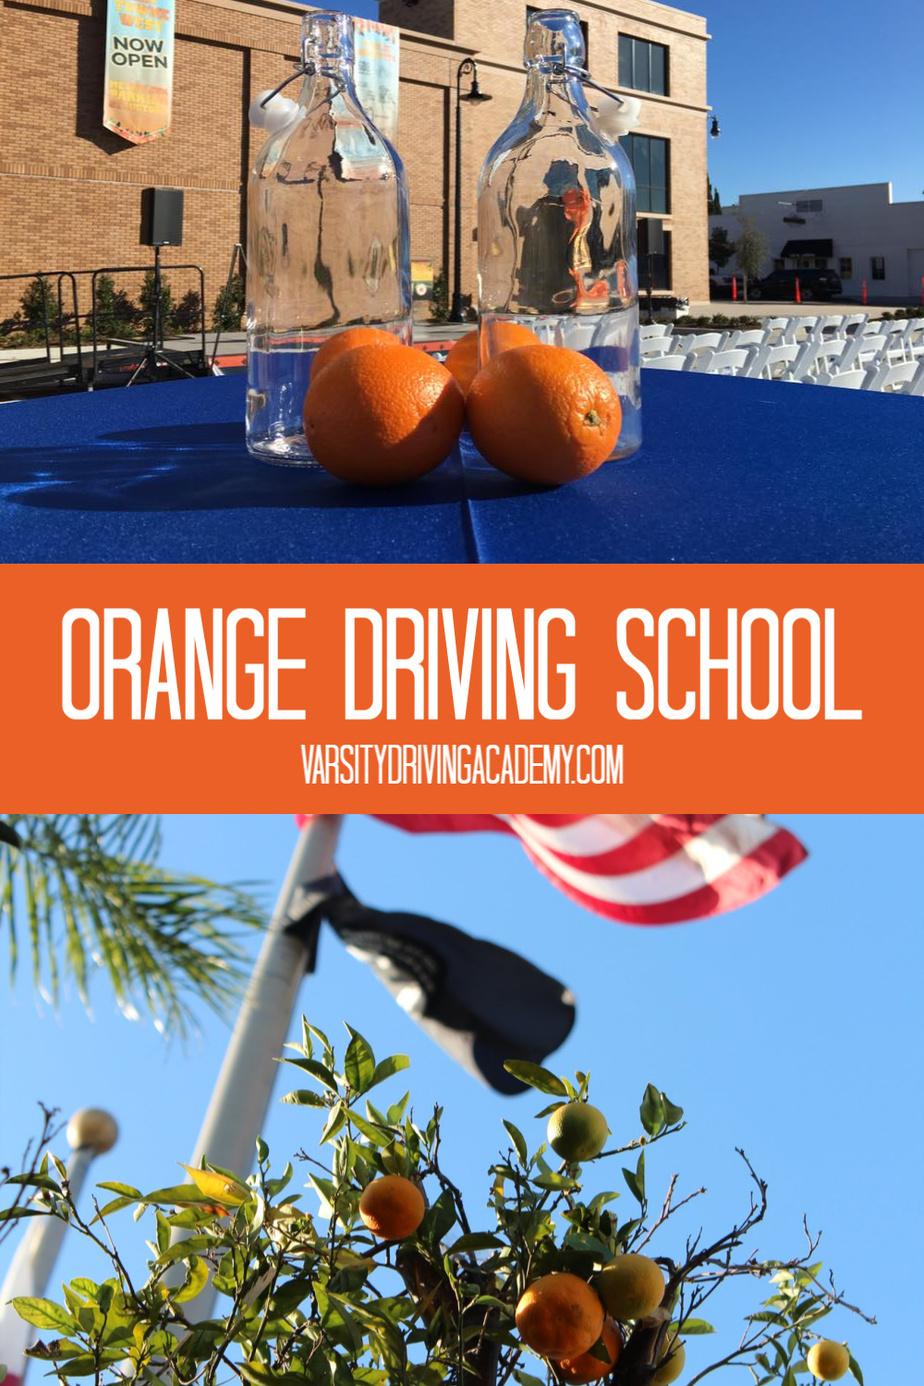 The best driving school in Orange is Varsity Driving Academy and you can attend the drivers ed in Orange county by registering for classes at the best Orange driving school, Varsity Driving Academy, today!